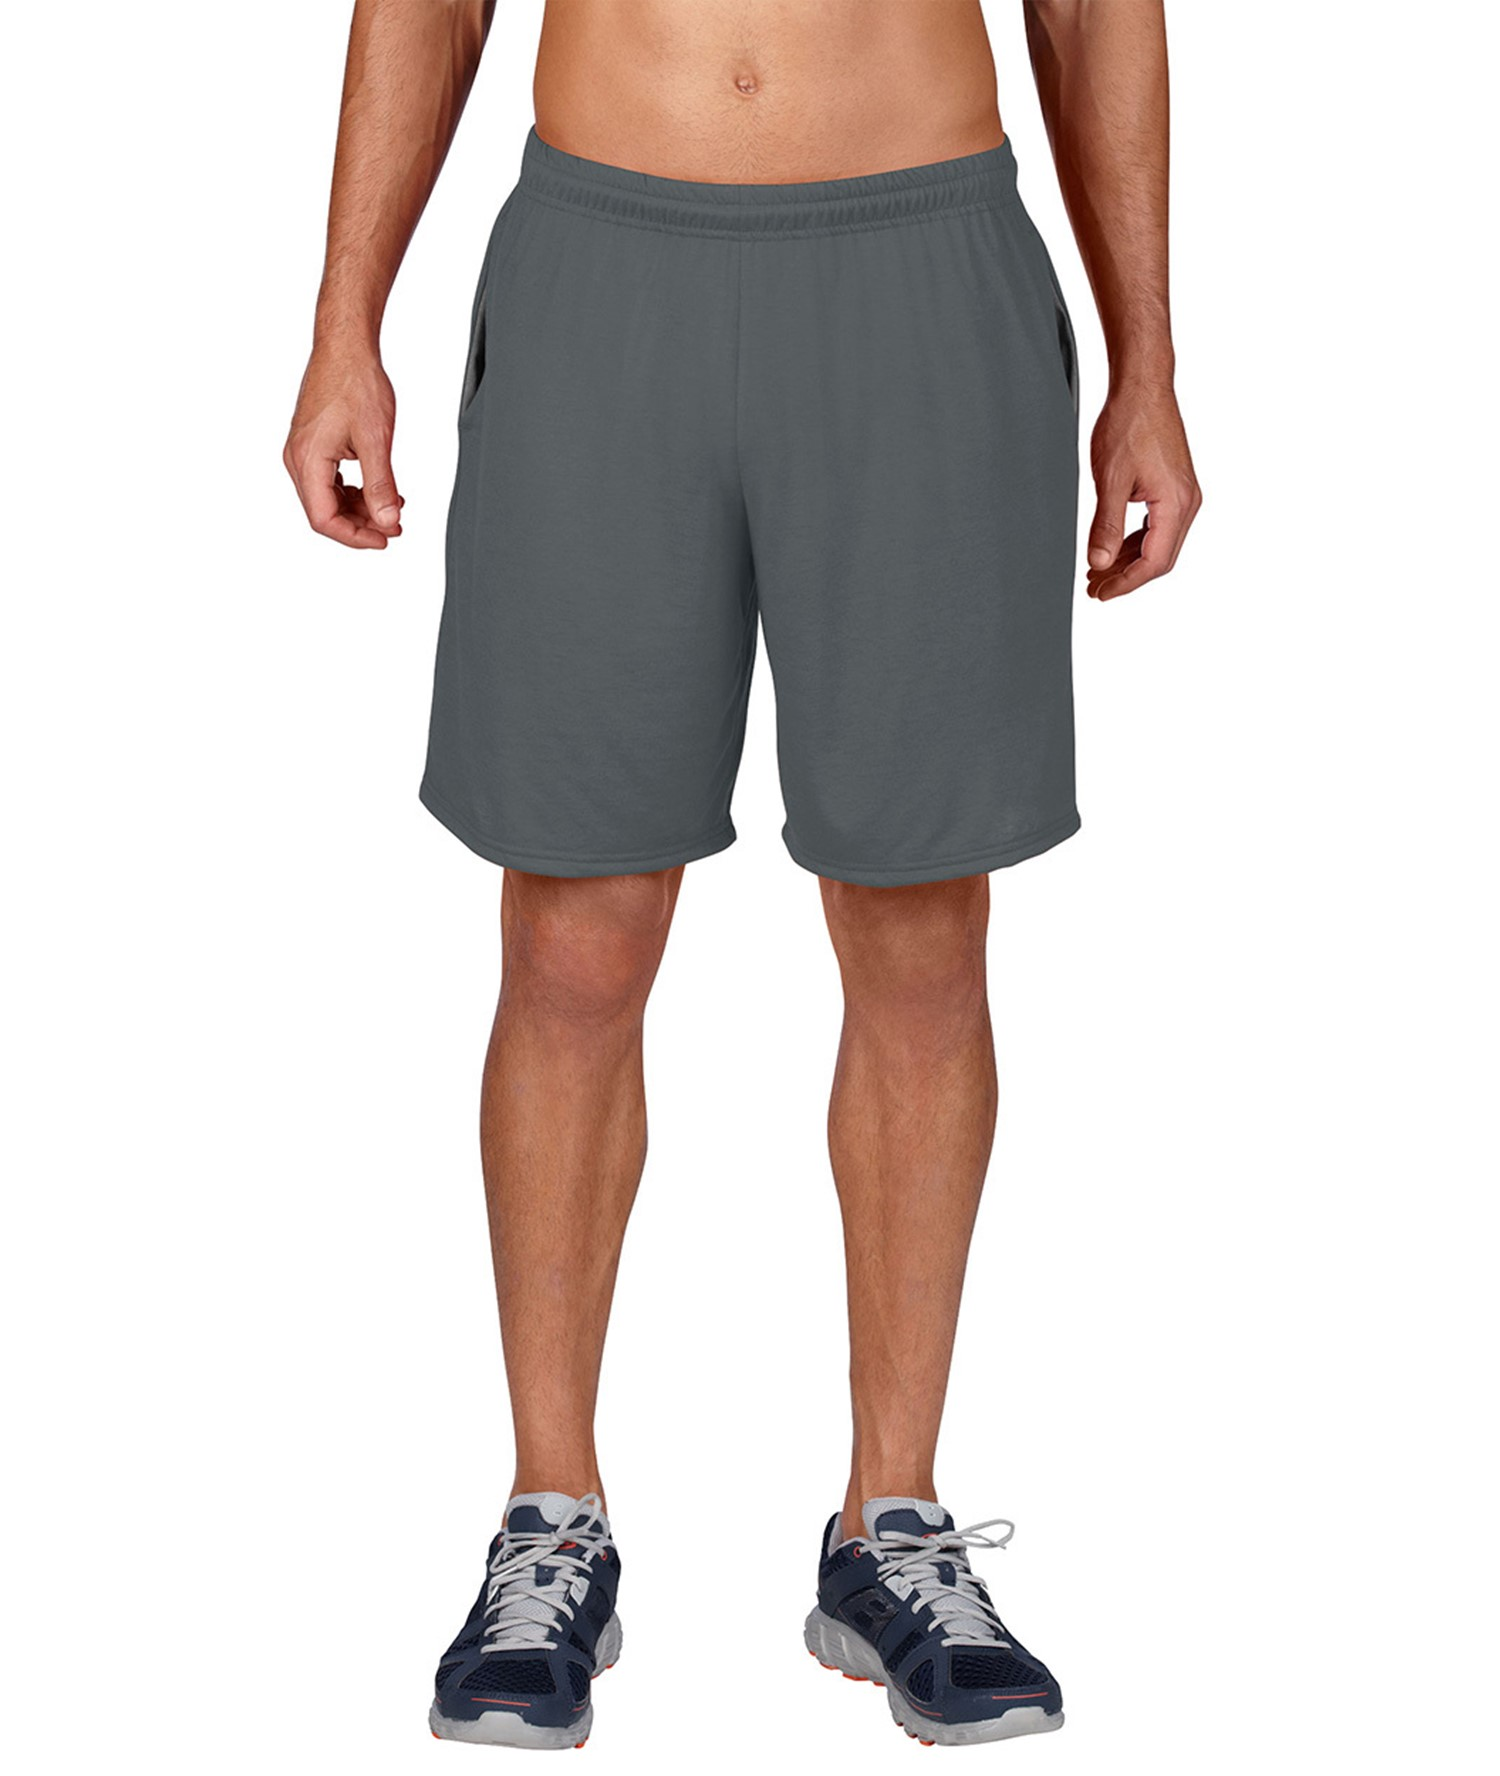 GILDAN PERFORMANCE ADULT SHORTS WITH POCKET